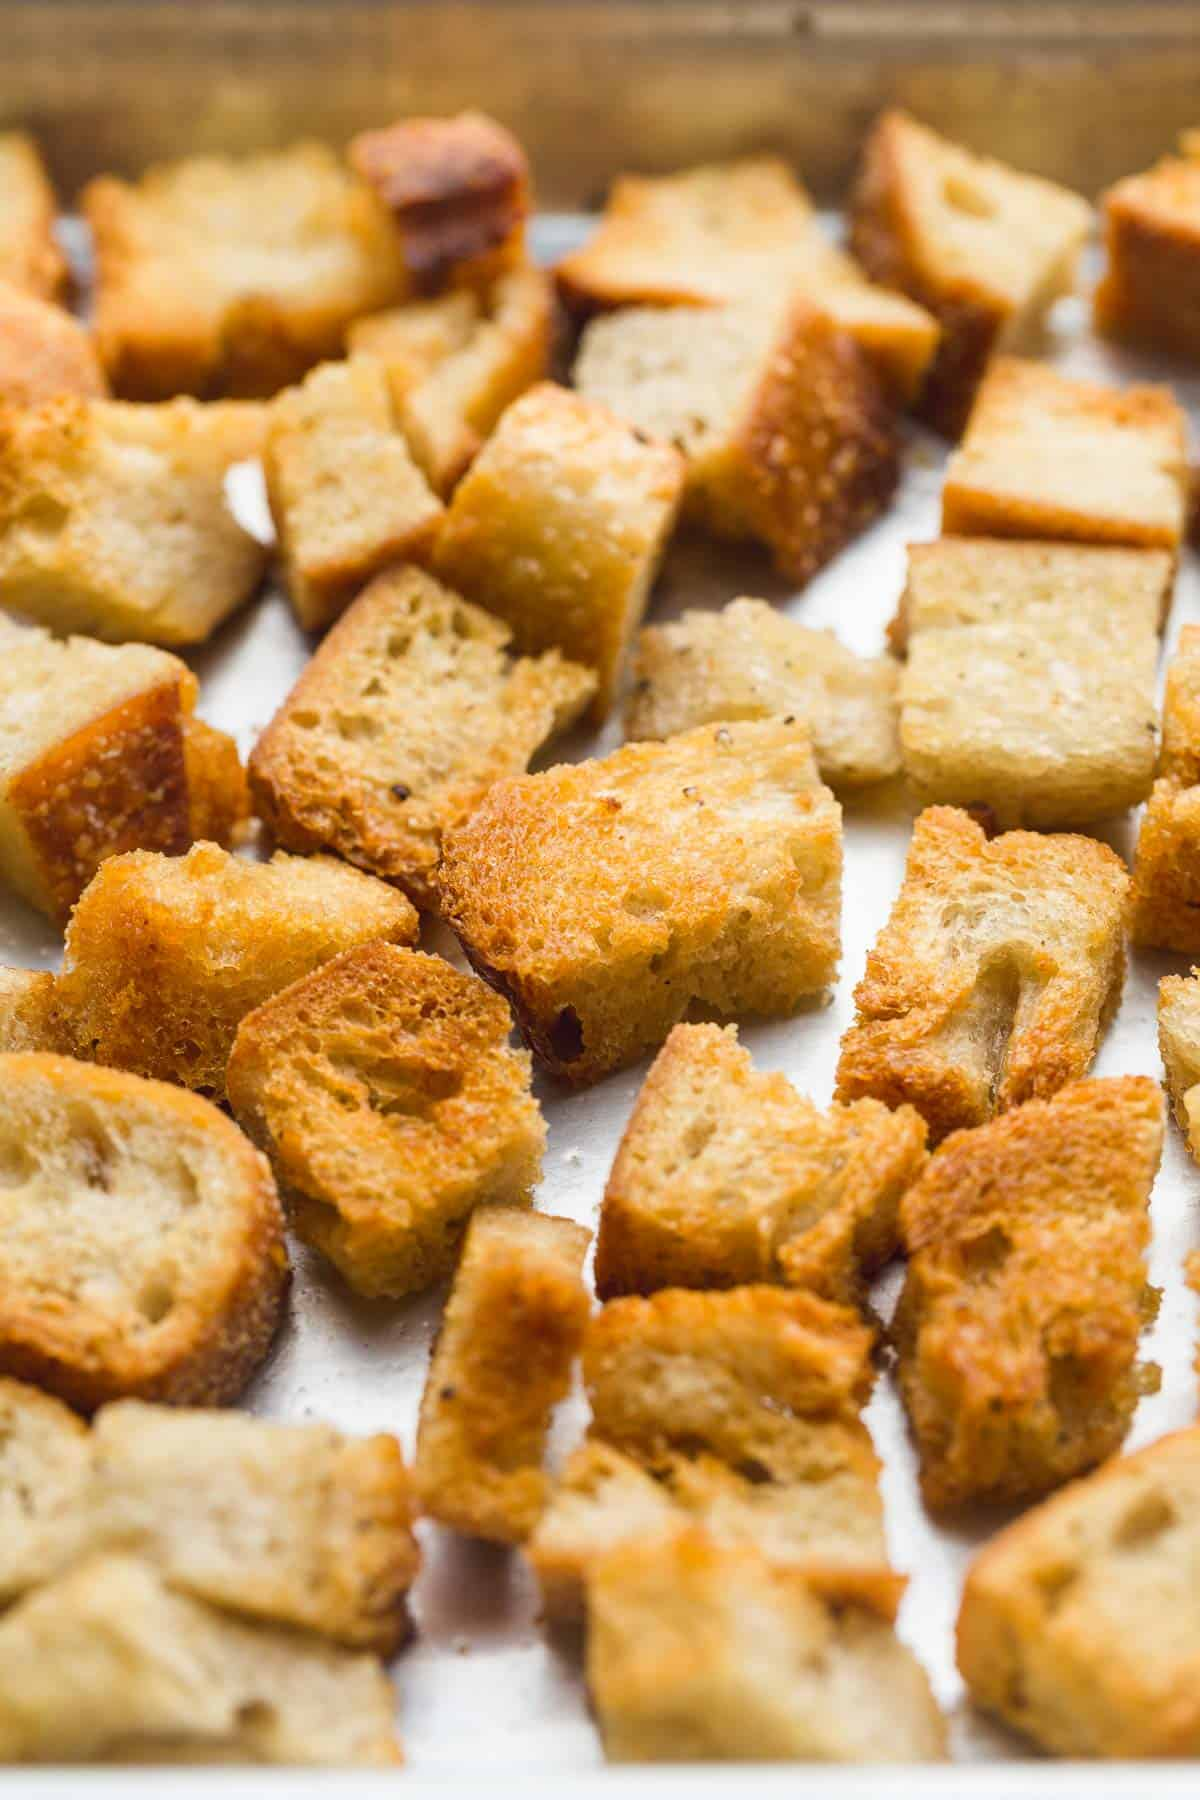 Crispy and golden brown homemade croutons